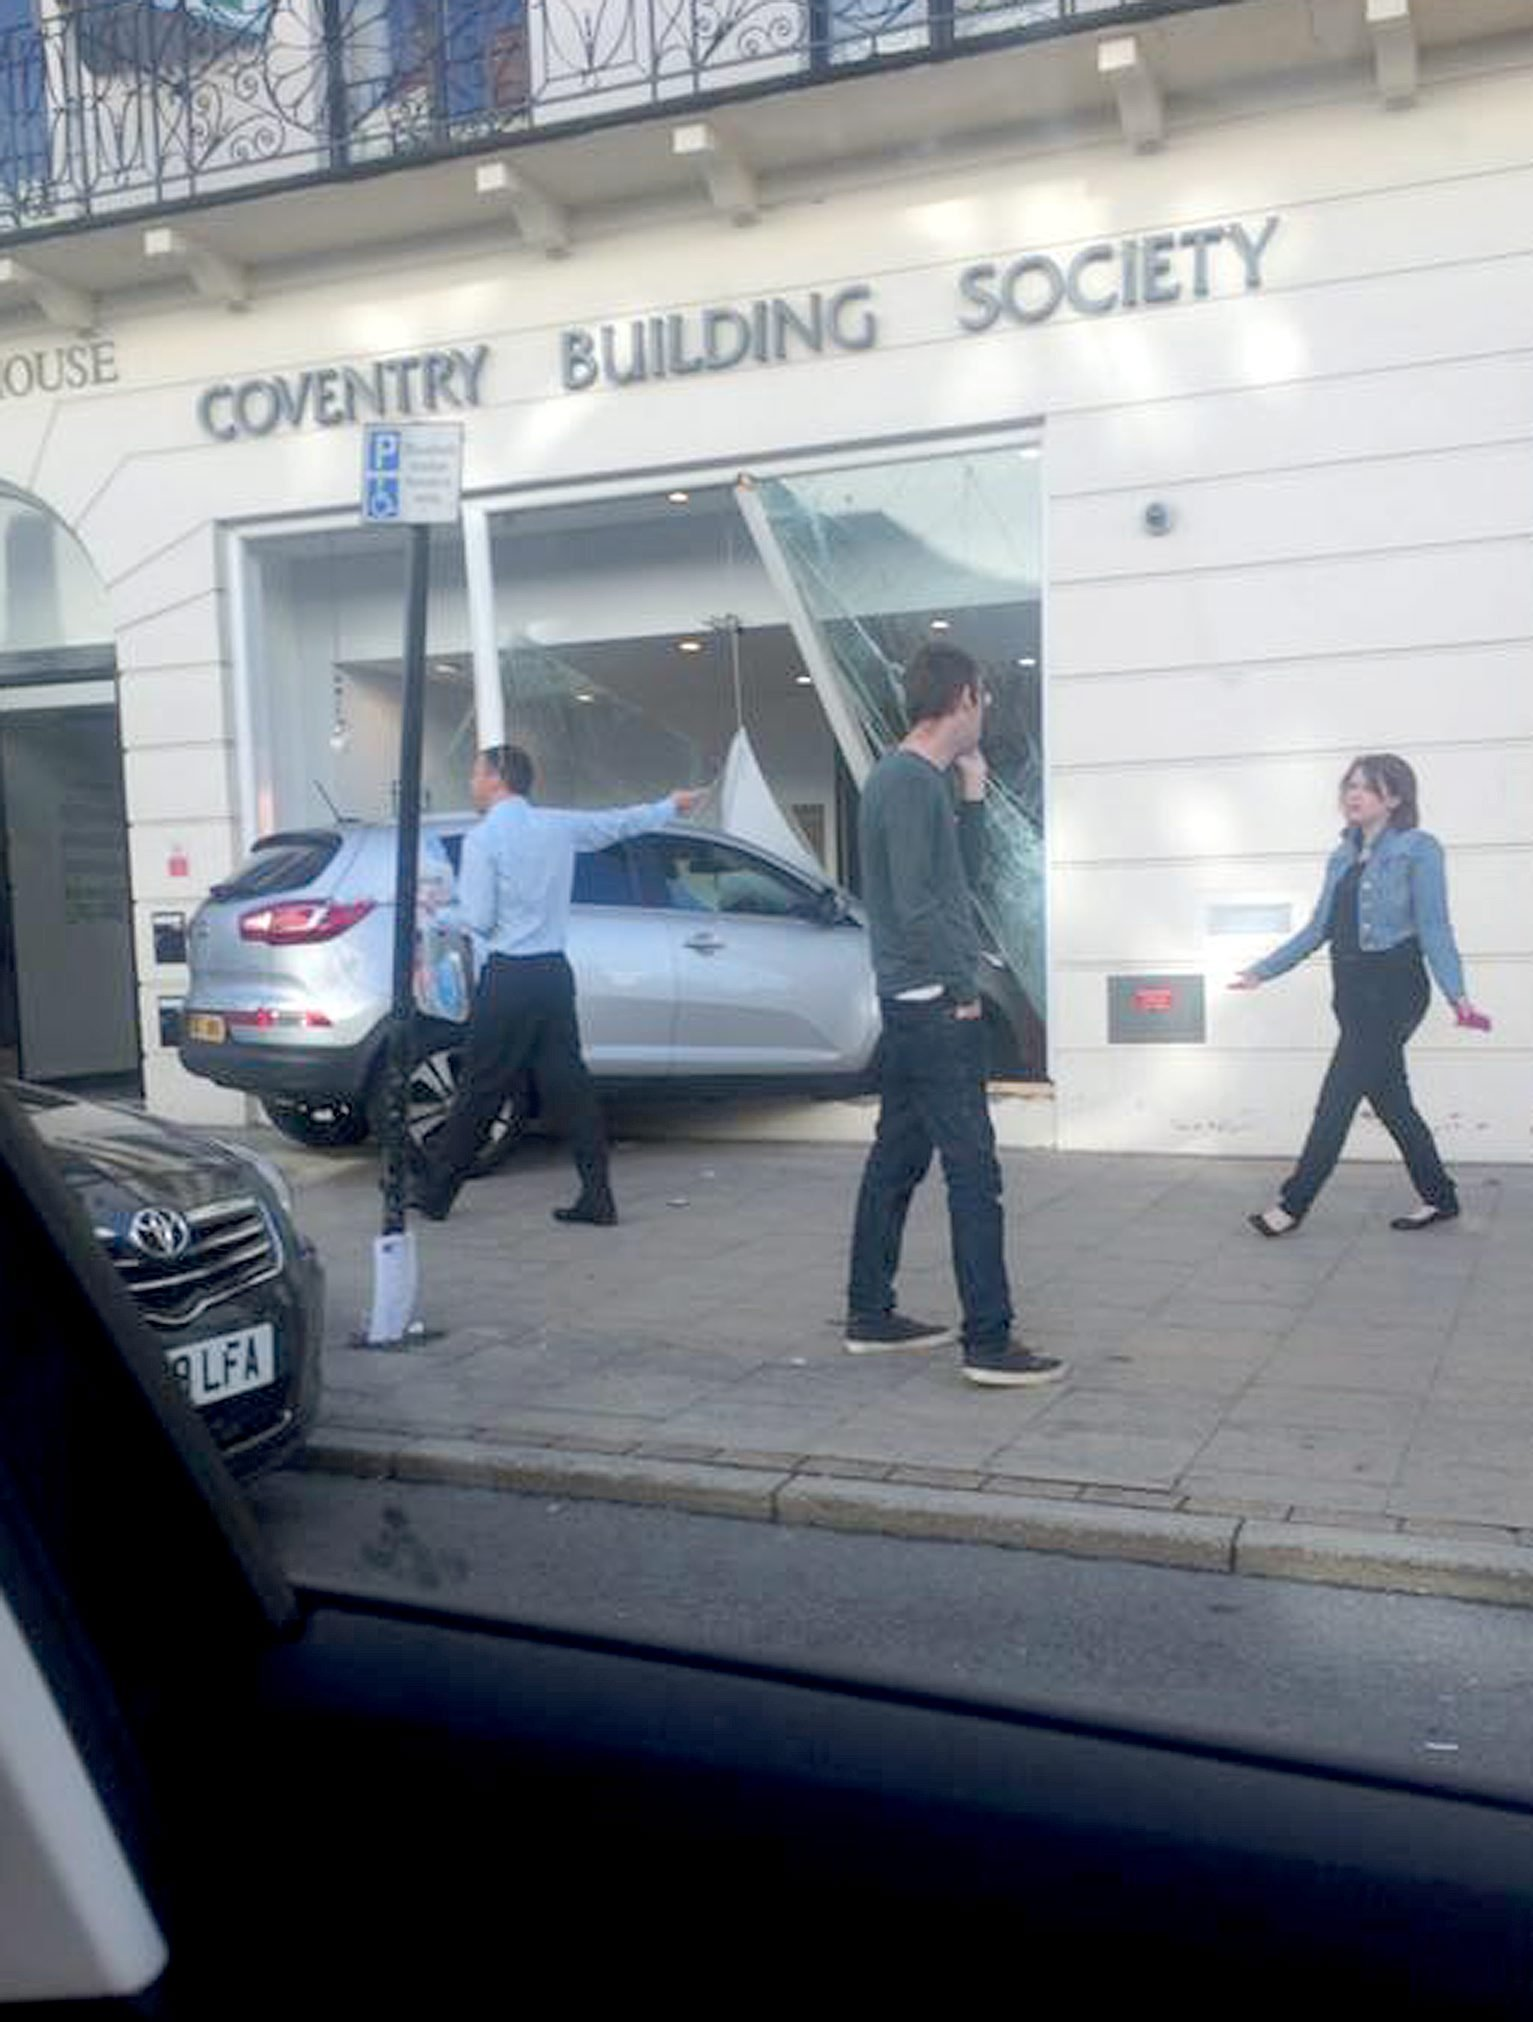 """A car crashed through the window of Coventry Building SocietyÃs, Leamington town centre branch this morning.  See NTI story NTIROBBERY.  The incident happened shortly before 9am this morning as commuters made their way to work in the busy Leamington town centre.  A grey Kia smashed through the front window of the building societyÃs upper Parade branch.  Warwickshire Police are at the scene, but nobody has been arrested and it is not yet known if anyone has been injured.  A spokesman for Warwickshire Police said: """"We were called just after 8.30am to reports of a robbery at Coventry Building Society on the Parade, in Leamington Spa.  Officers are currently at the scene dealing with the incident."""""""